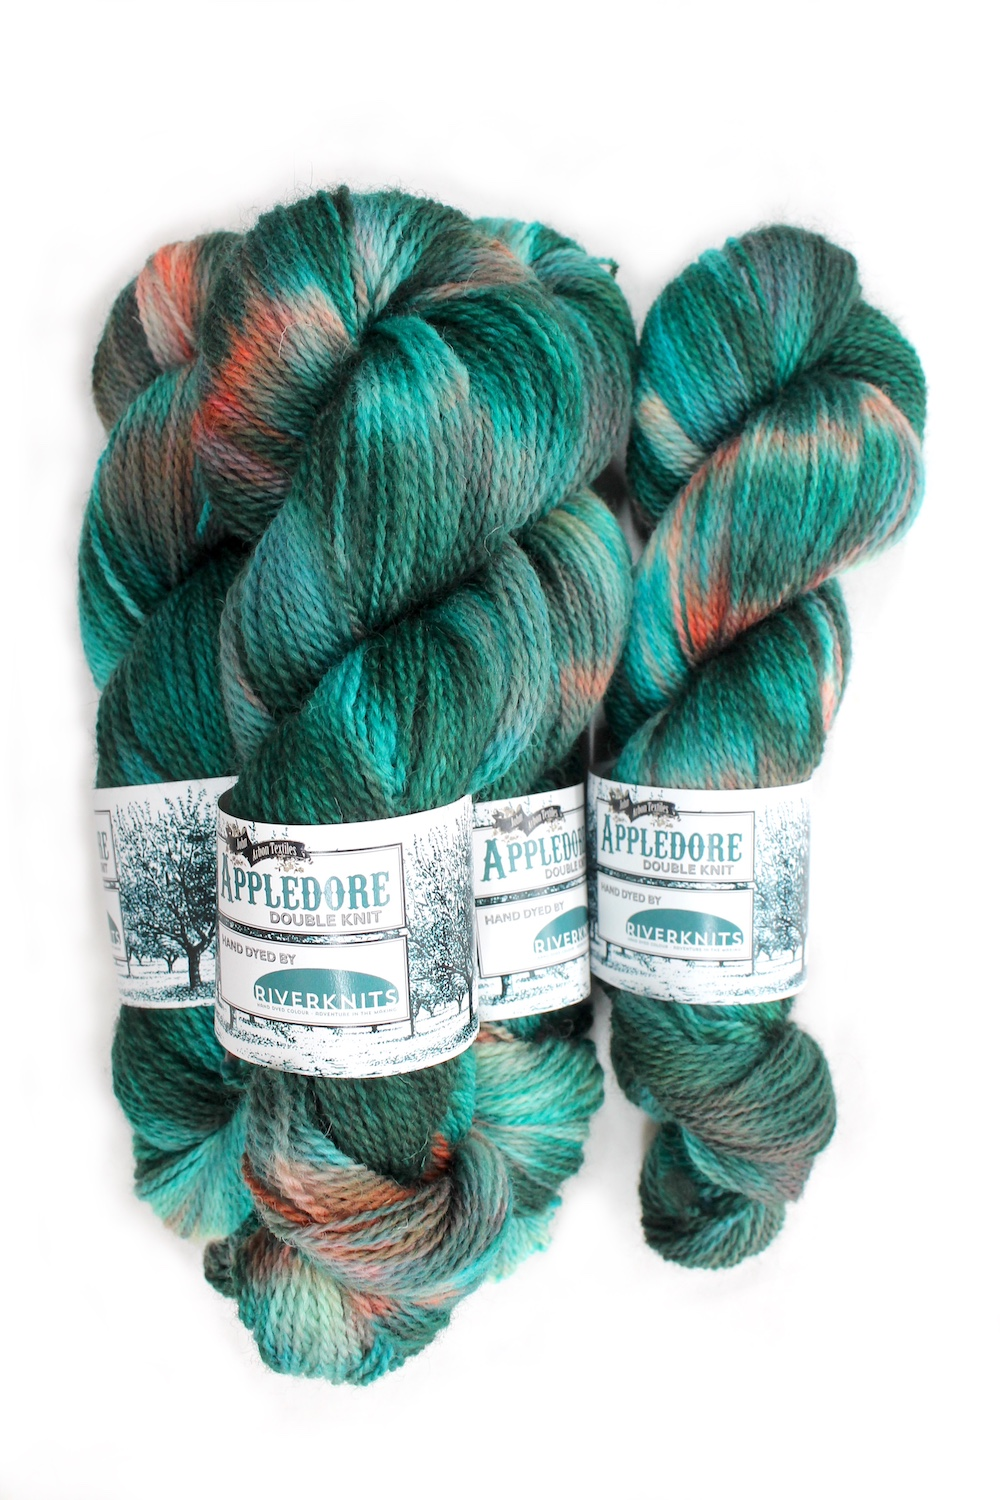 Skeins of Appledore in the Avalon colourway